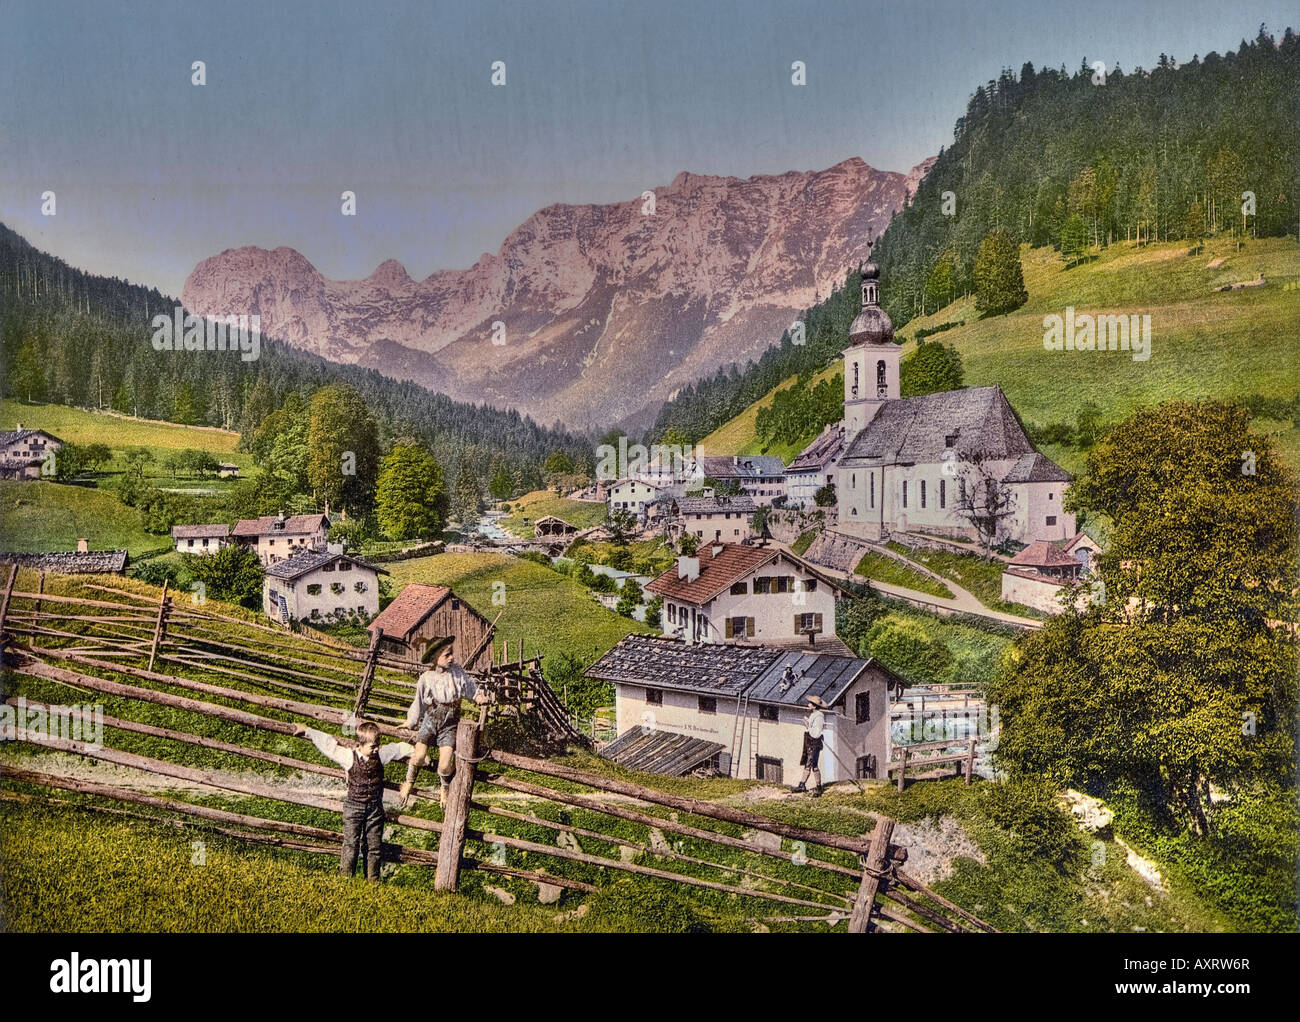 Village Ramsau Bavaria Stock Photo